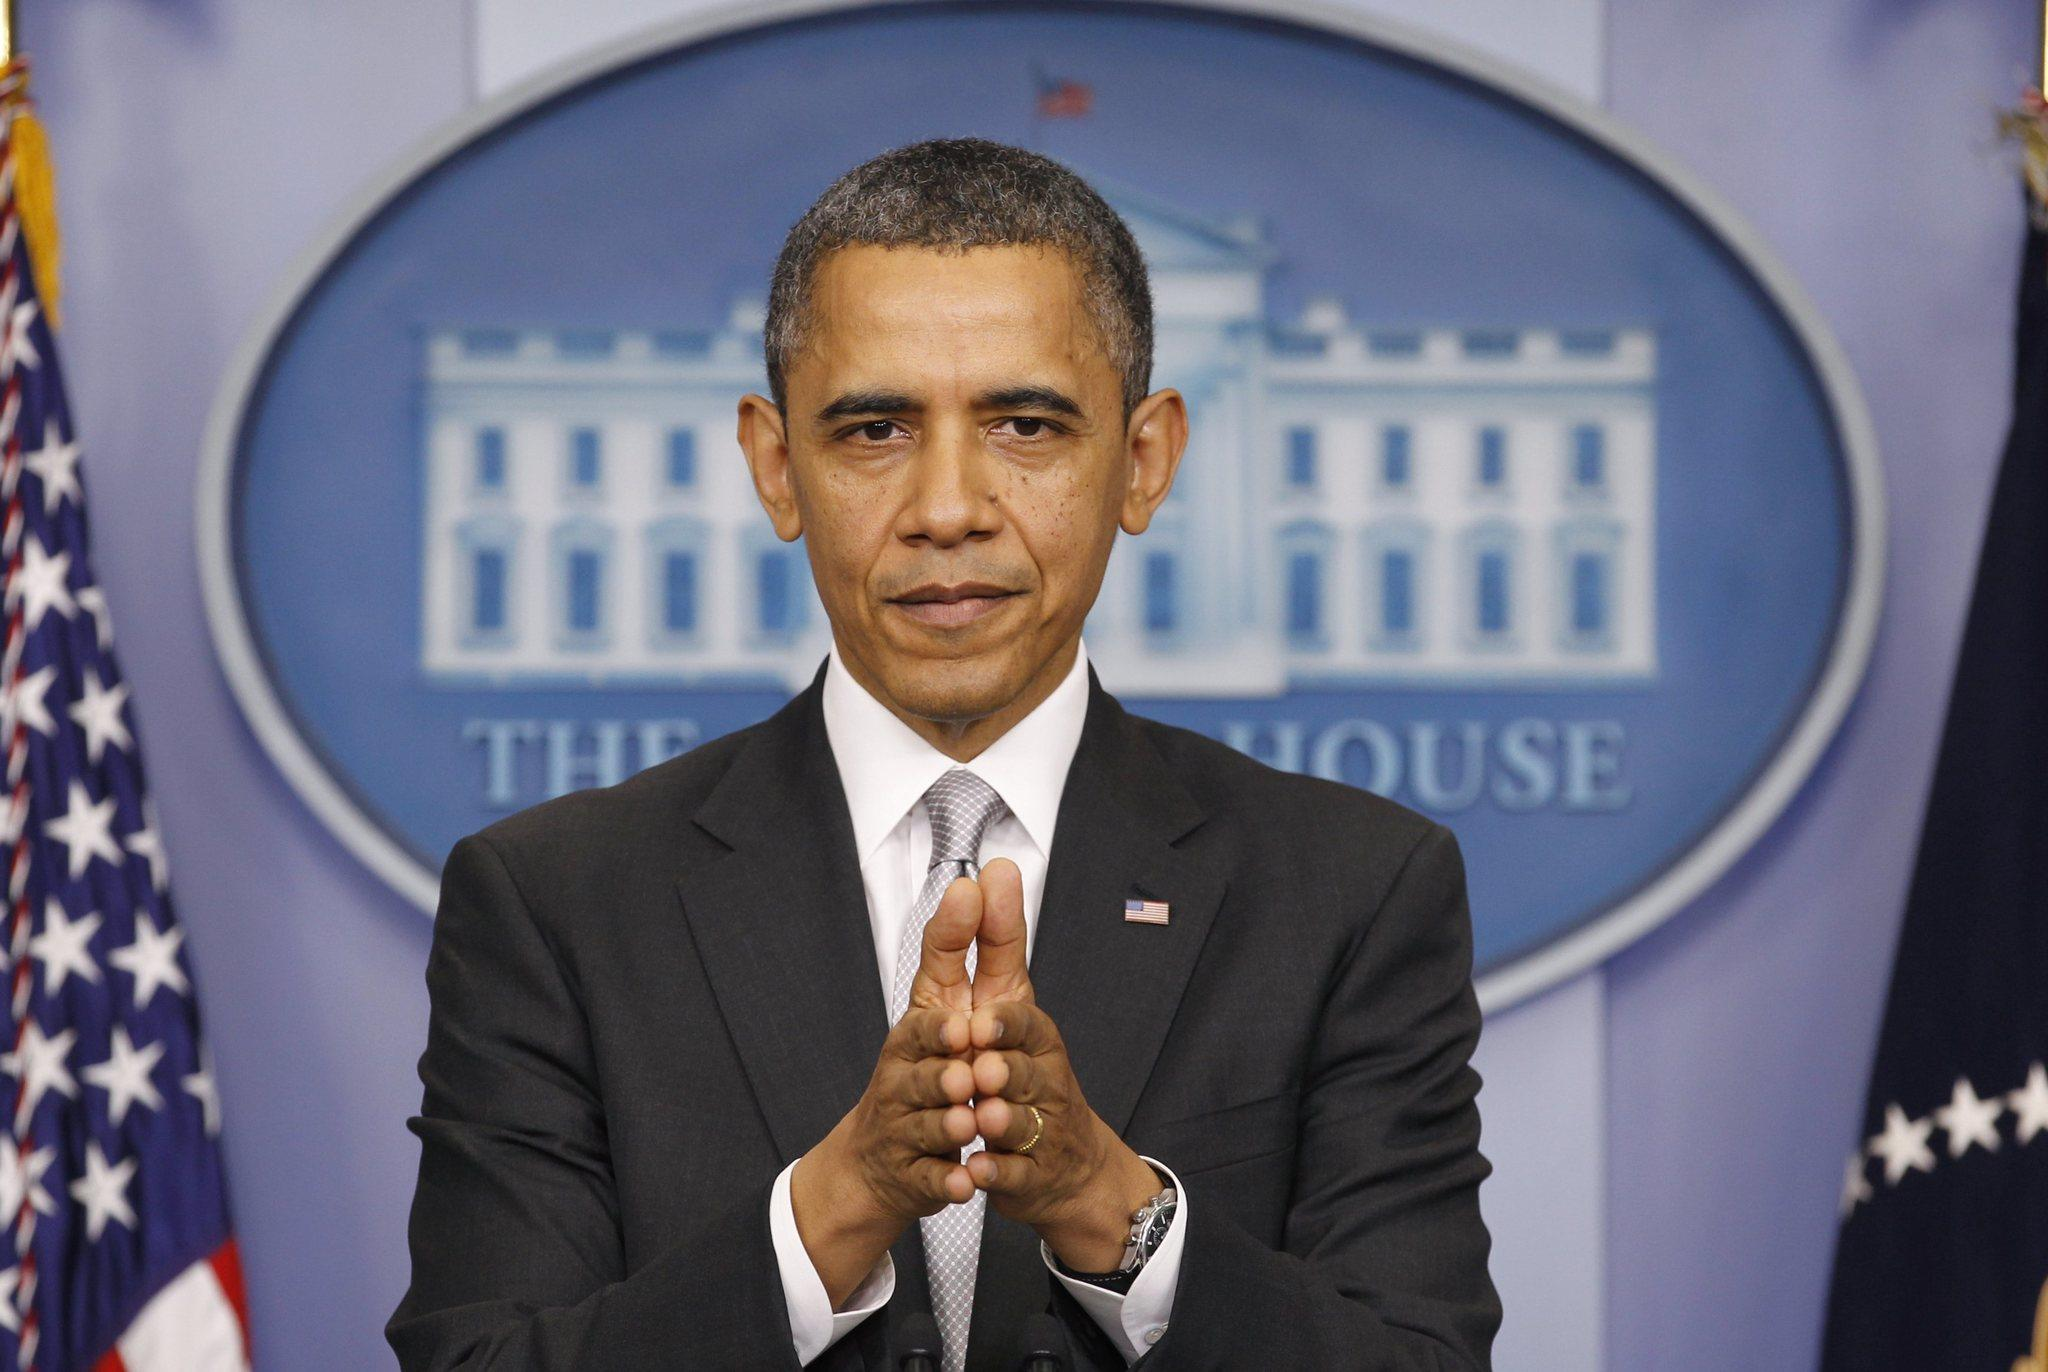 President Barack Obama addresses members of the media in the White House Briefing Room in this December 19, 2012 file photo.